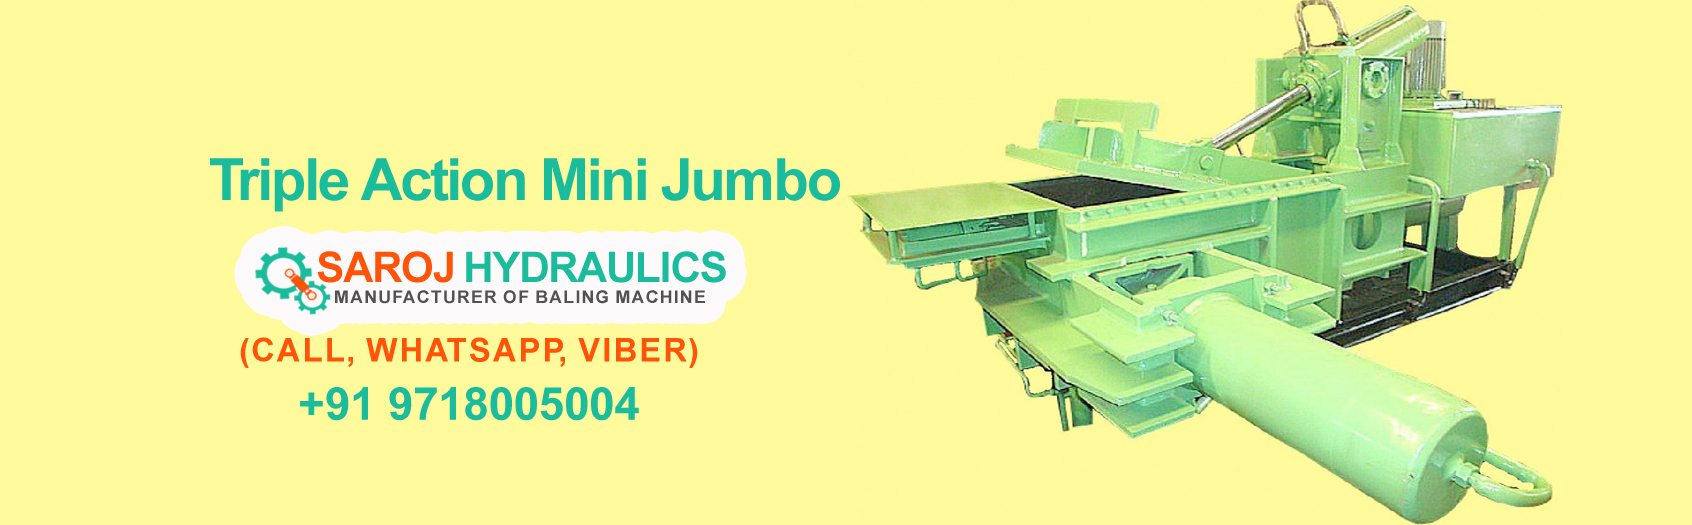 pet bottle baling press,pet bottle Baling machine,pet bottle hydraulic baling press,pet bottle baler,pet bottle hydraulic baling pet bottle machine,pet bottle baling press machine,pet bottle bale press machine,pet bottle pressing machine(INDIA)